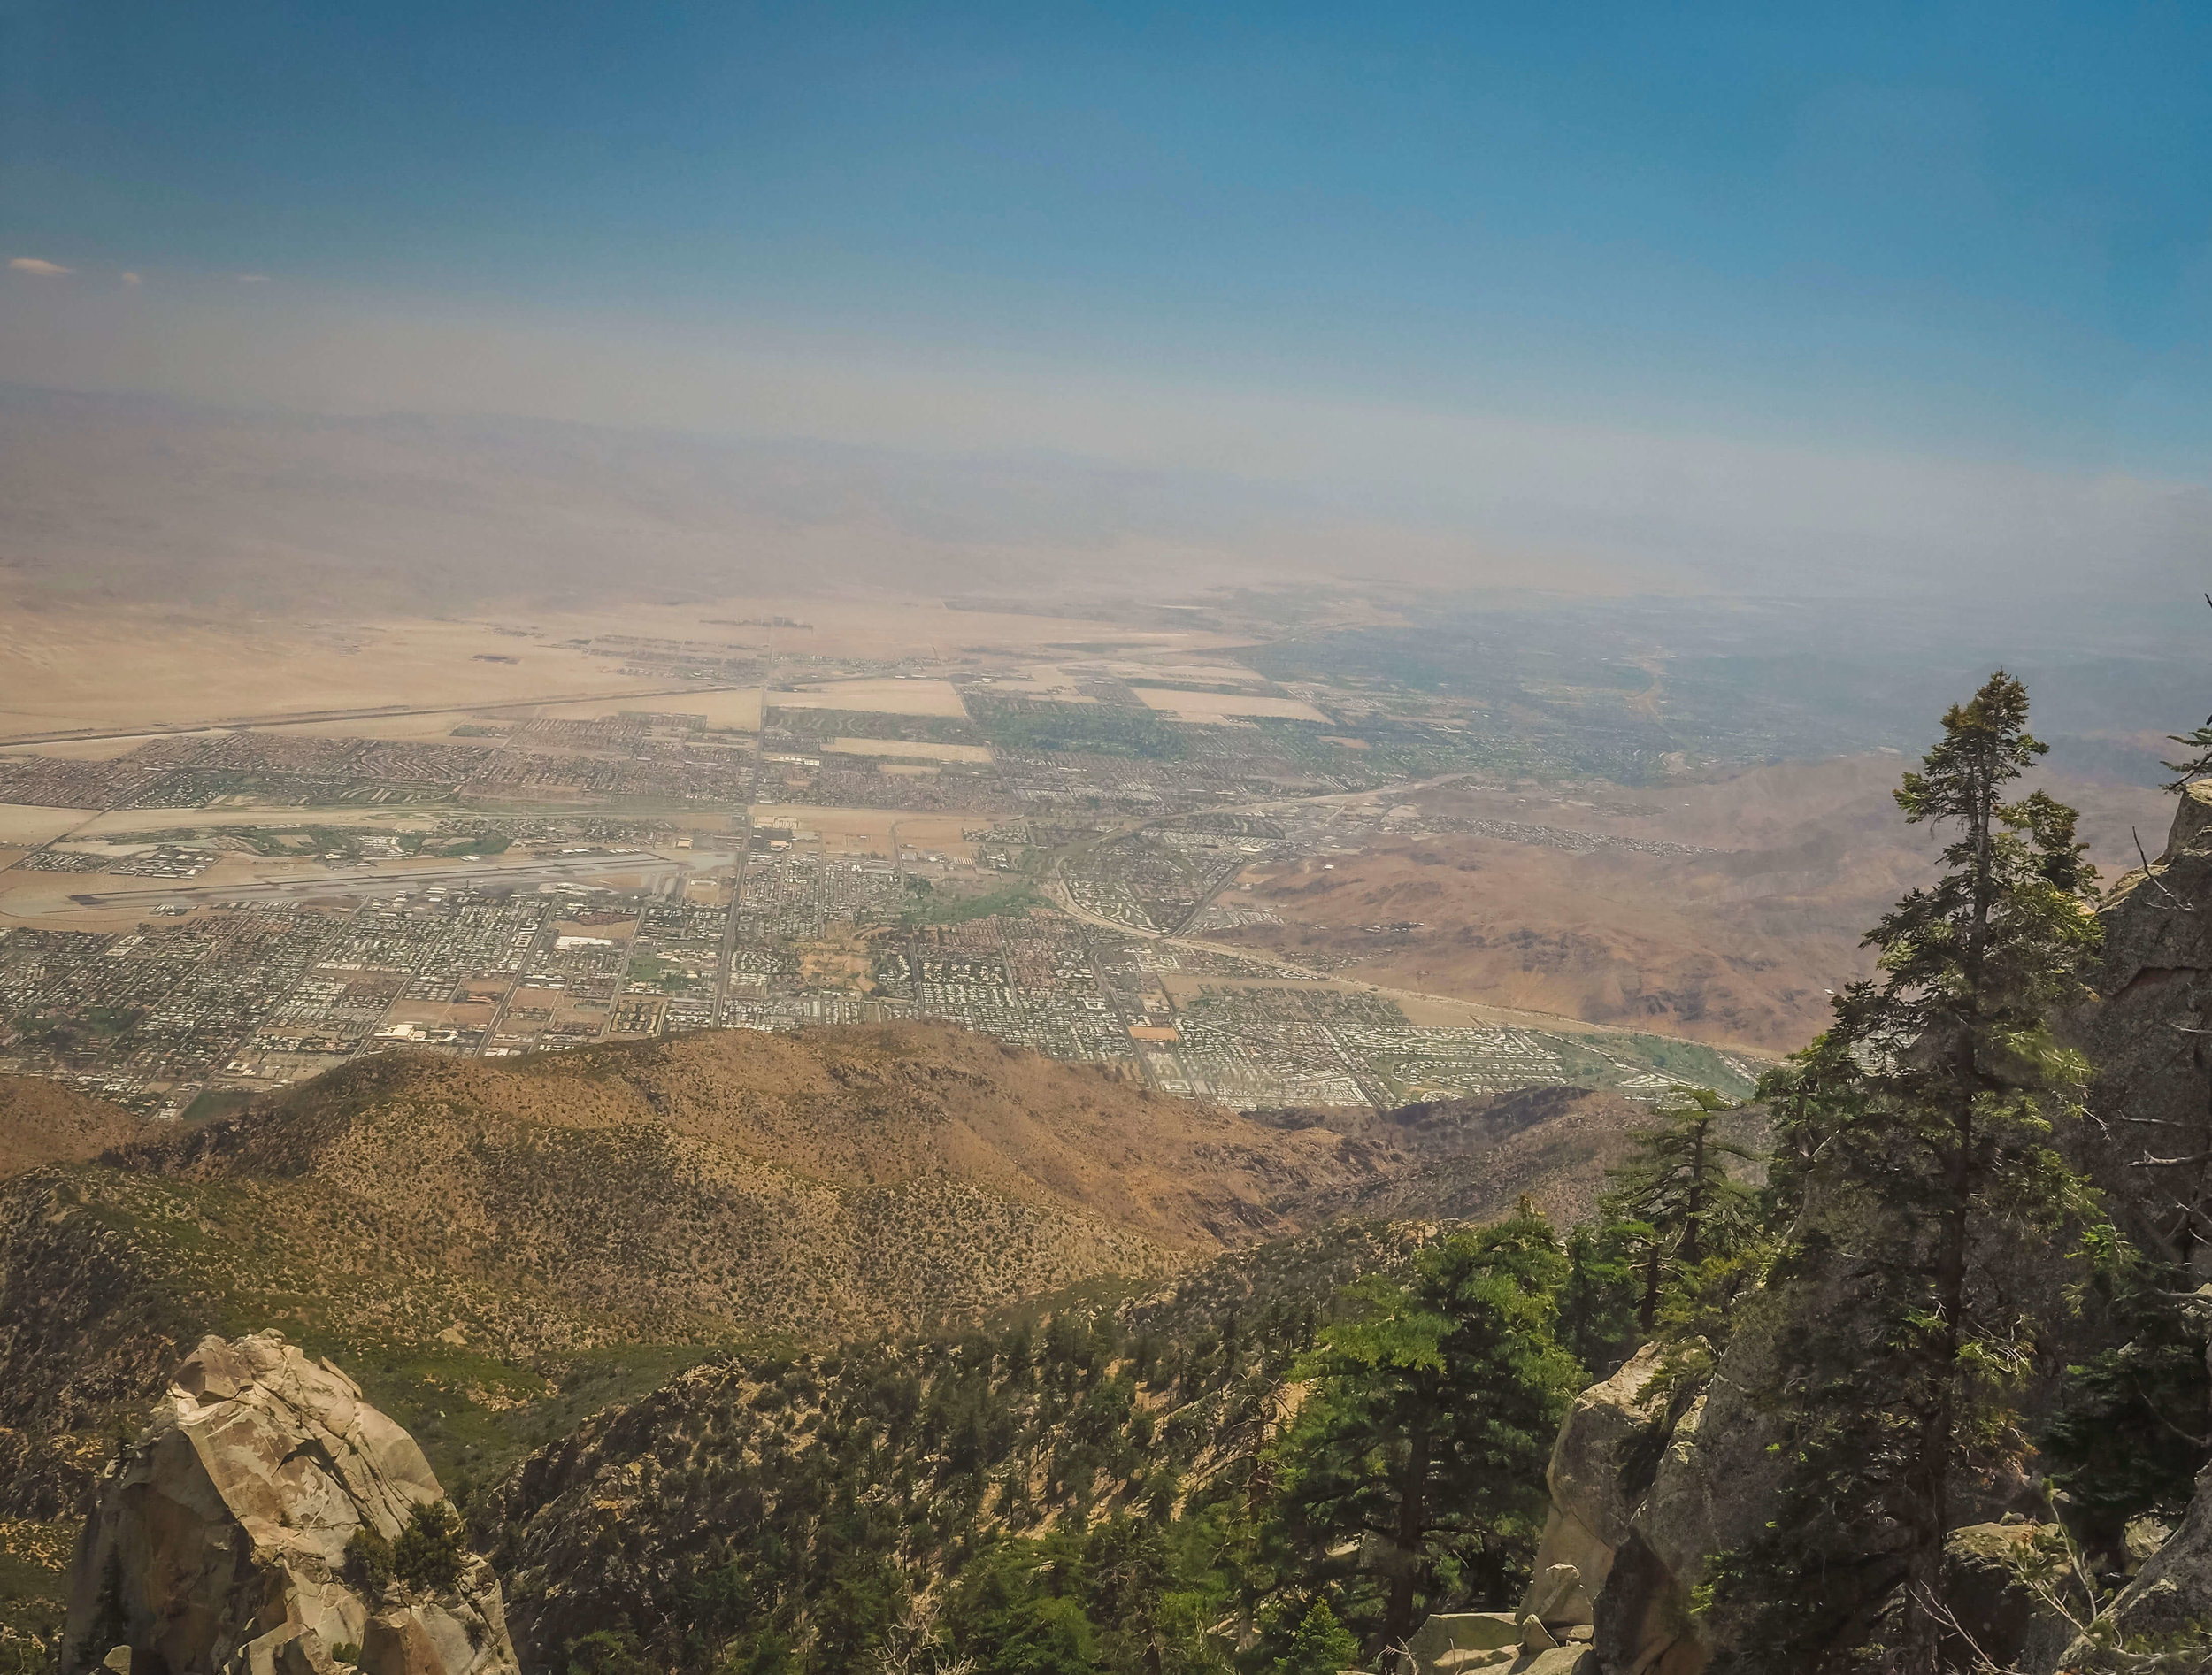 Take the Palm Springs Aerial Tramway up to Mount San Jacinto State Park, the best outdoor day trip for your Palm Springs vacation. Overlooking the Palm Springs, it sits on top of a nearby mountain and allows not only for great views and hiking, but an escape from the desert heat. #palmsprings #hiking #mountain